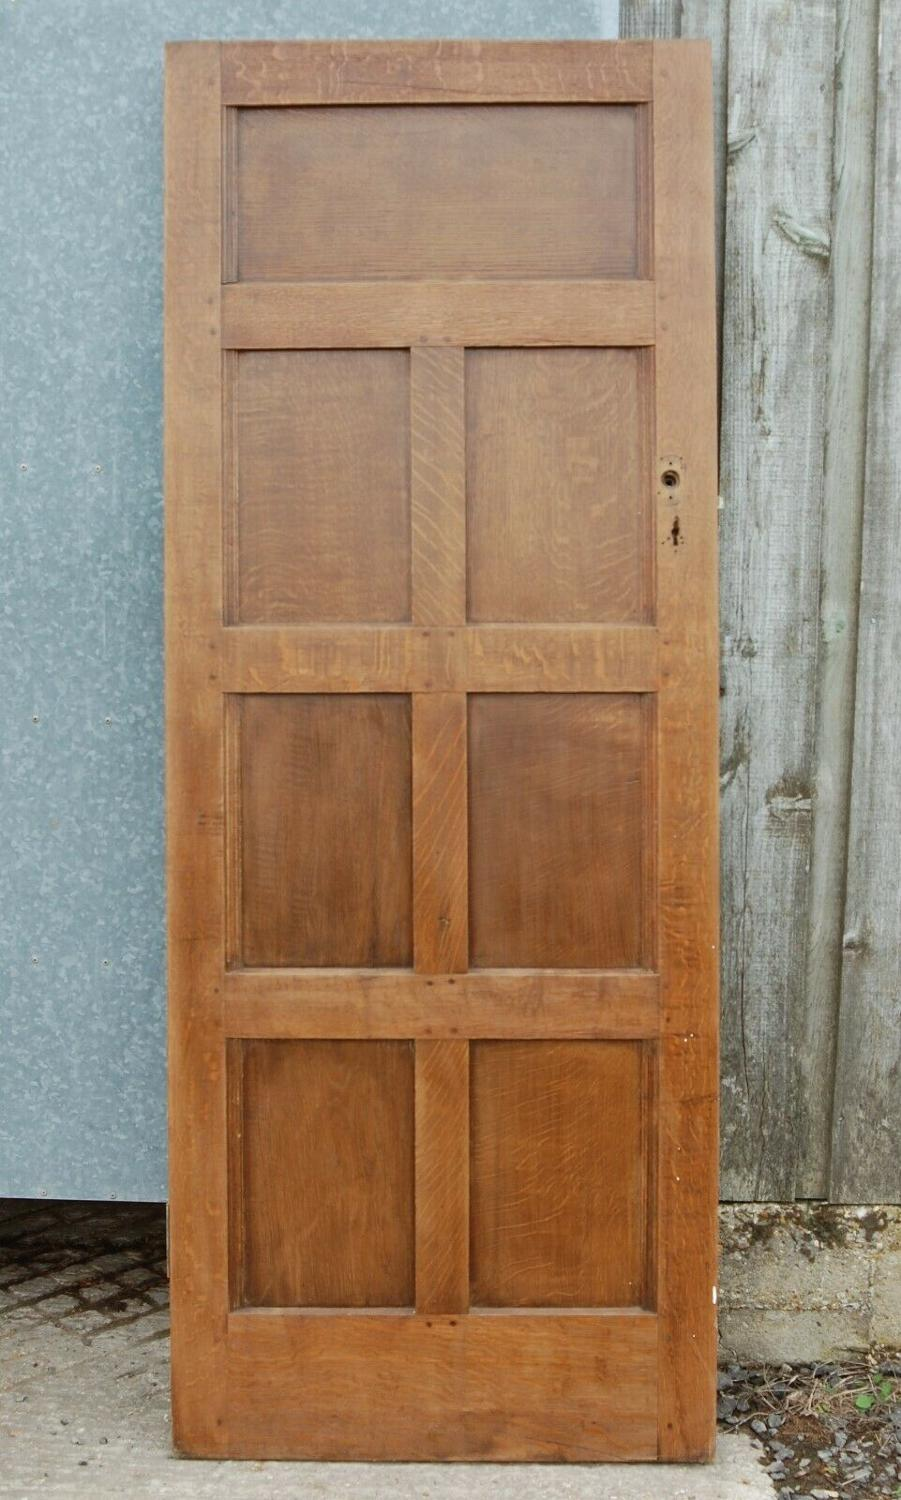 DI0686 A RECLAIMED ANTIQUE OAK AND PINE INTERNAL PANELLED DOOR